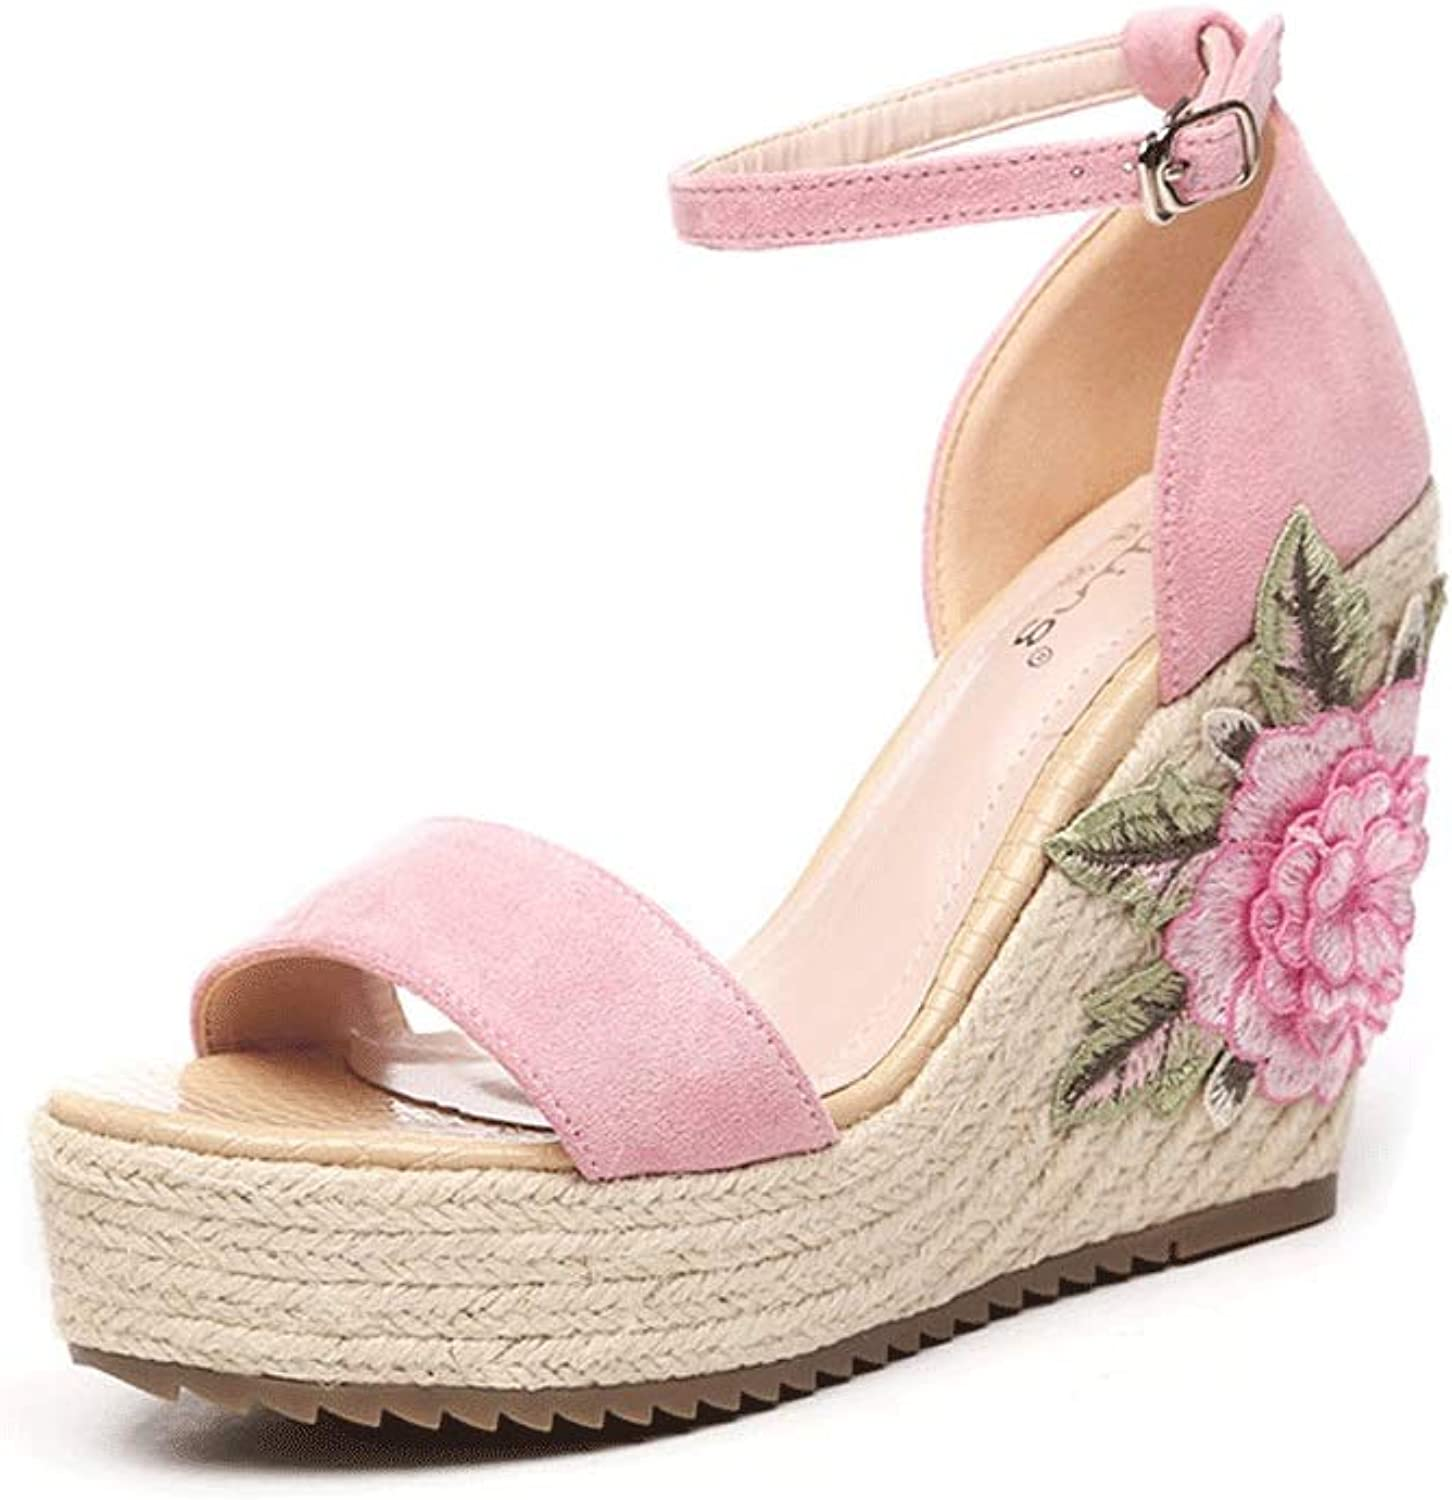 Summer New Women's shoes National Wind Sandals Bohemian Flowers Embroidery Small Size Women's shoes Stylish and Comfortable